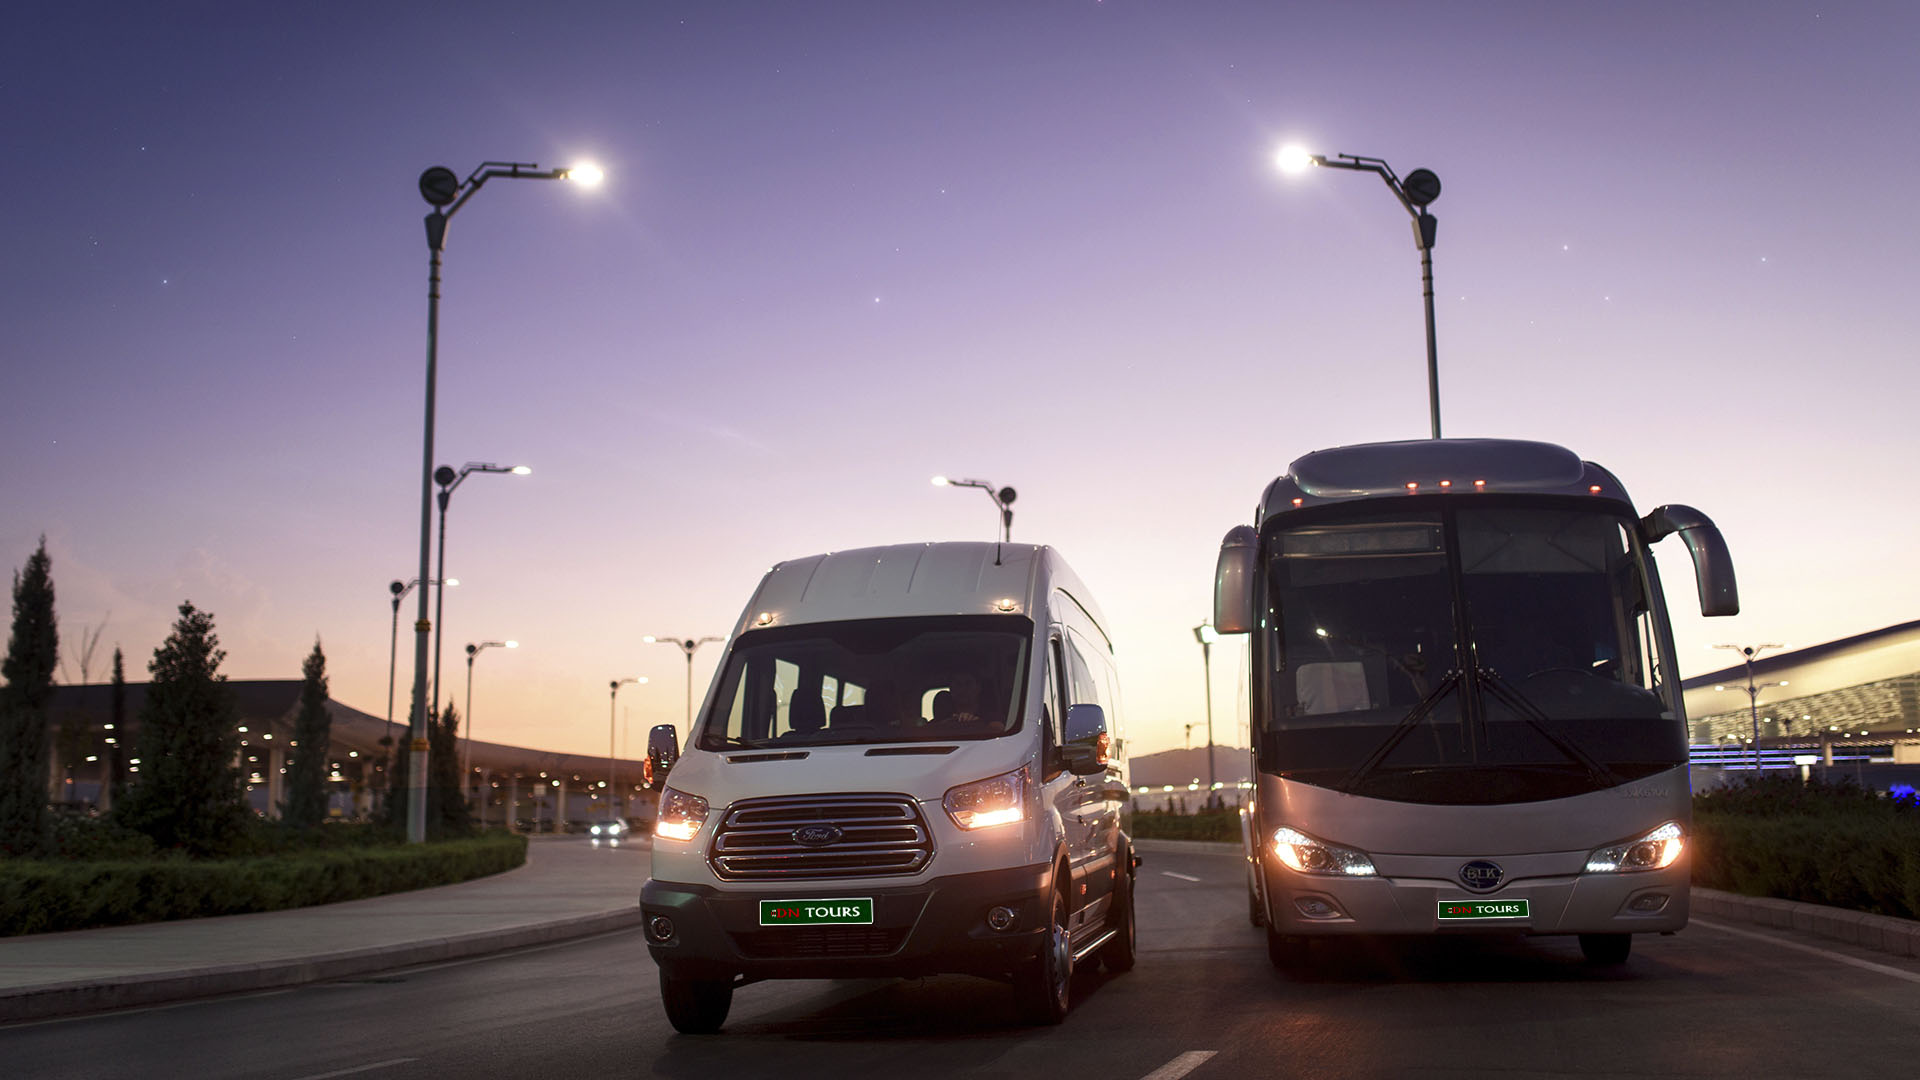 Bus, DN Tours business travel agency, rent a car Ashgabat Turkmenistan